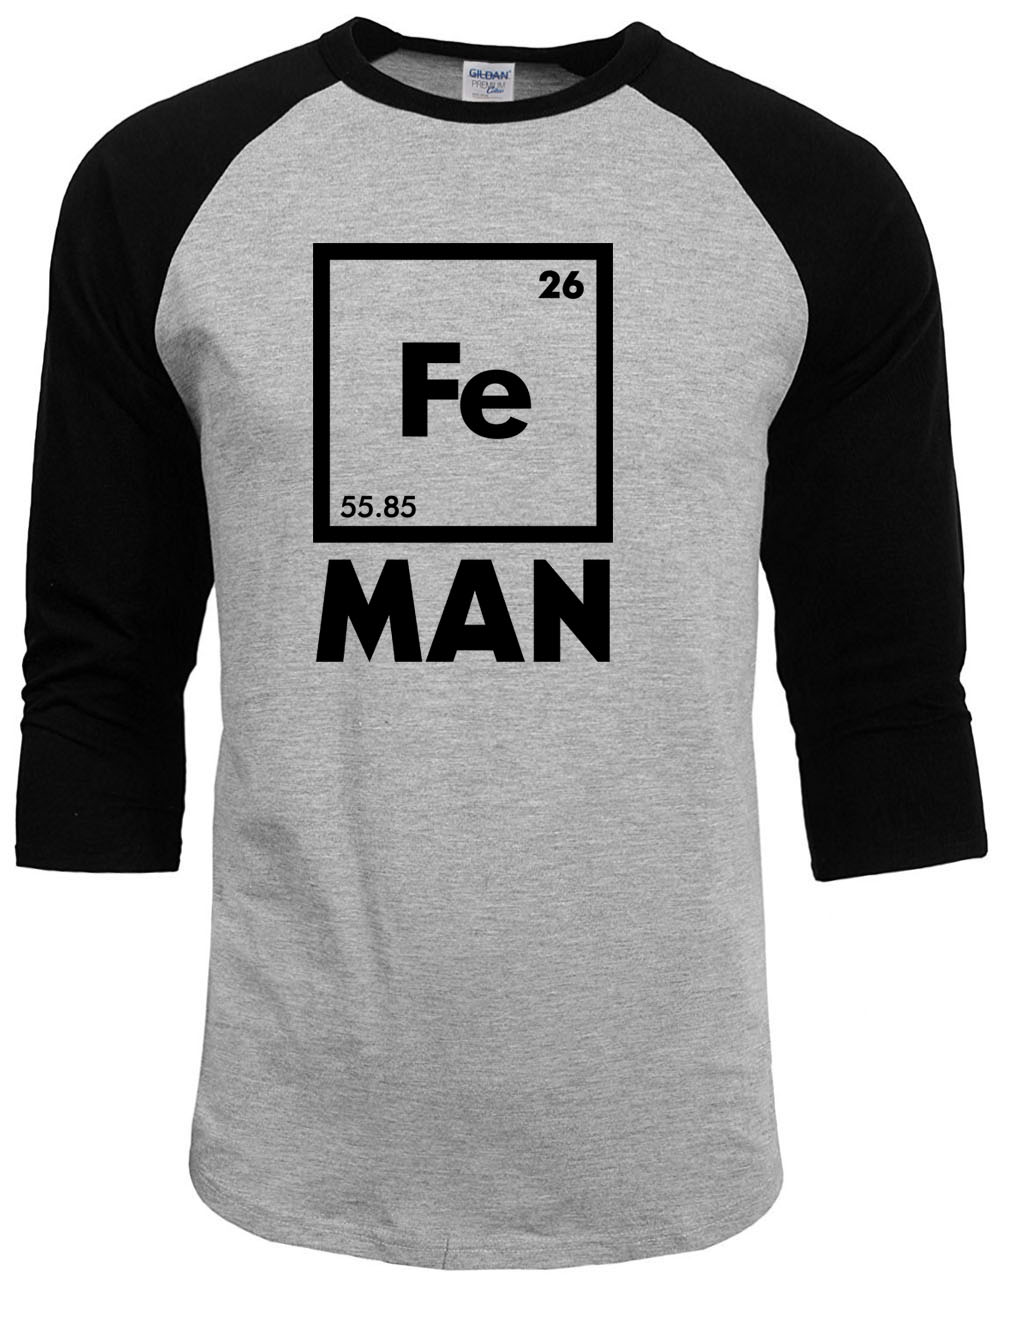 2017 summer autumn brand clothing raglan sleeve font b Chemistry b font Shirt Fe Periodic Table